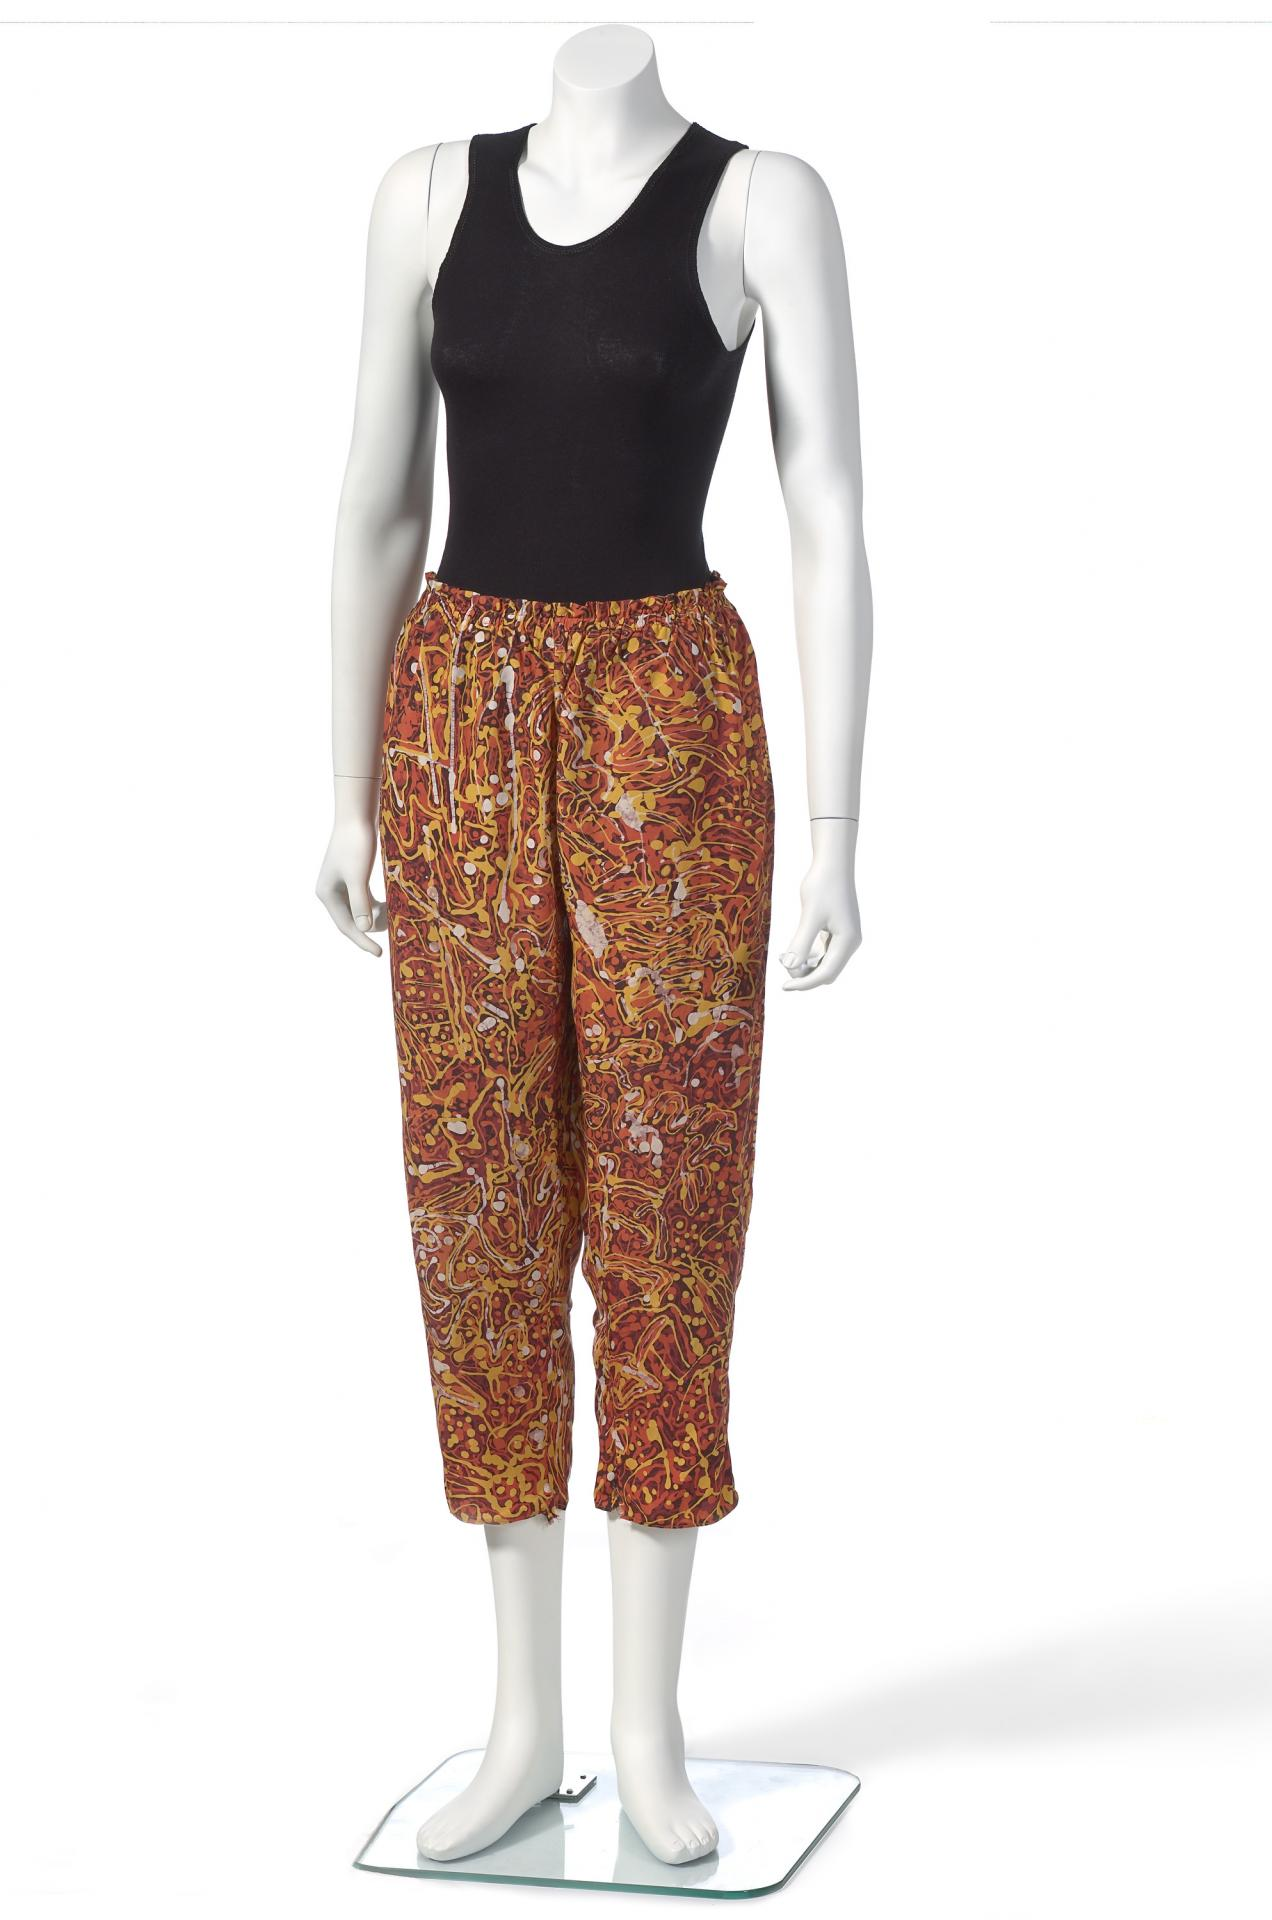 Pair of trousers